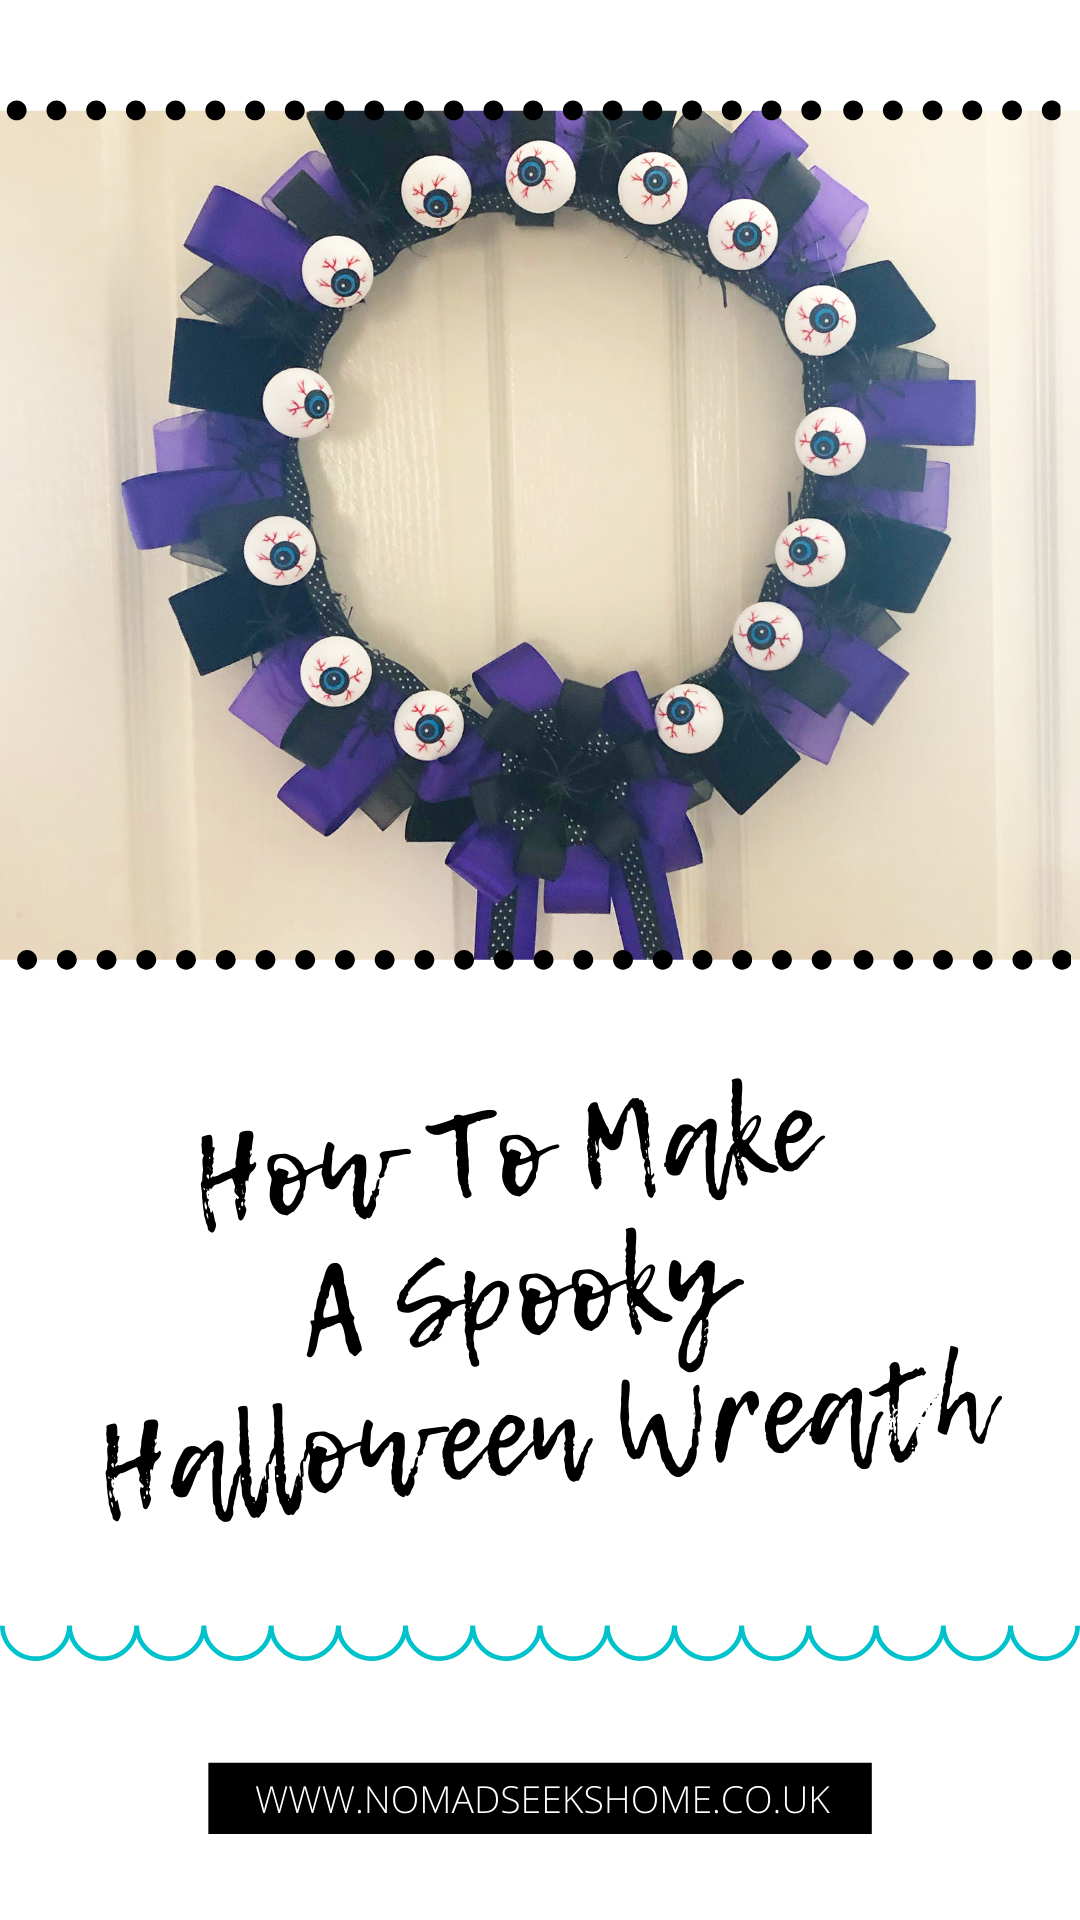 How To Make A Spooky Halloween Wreath